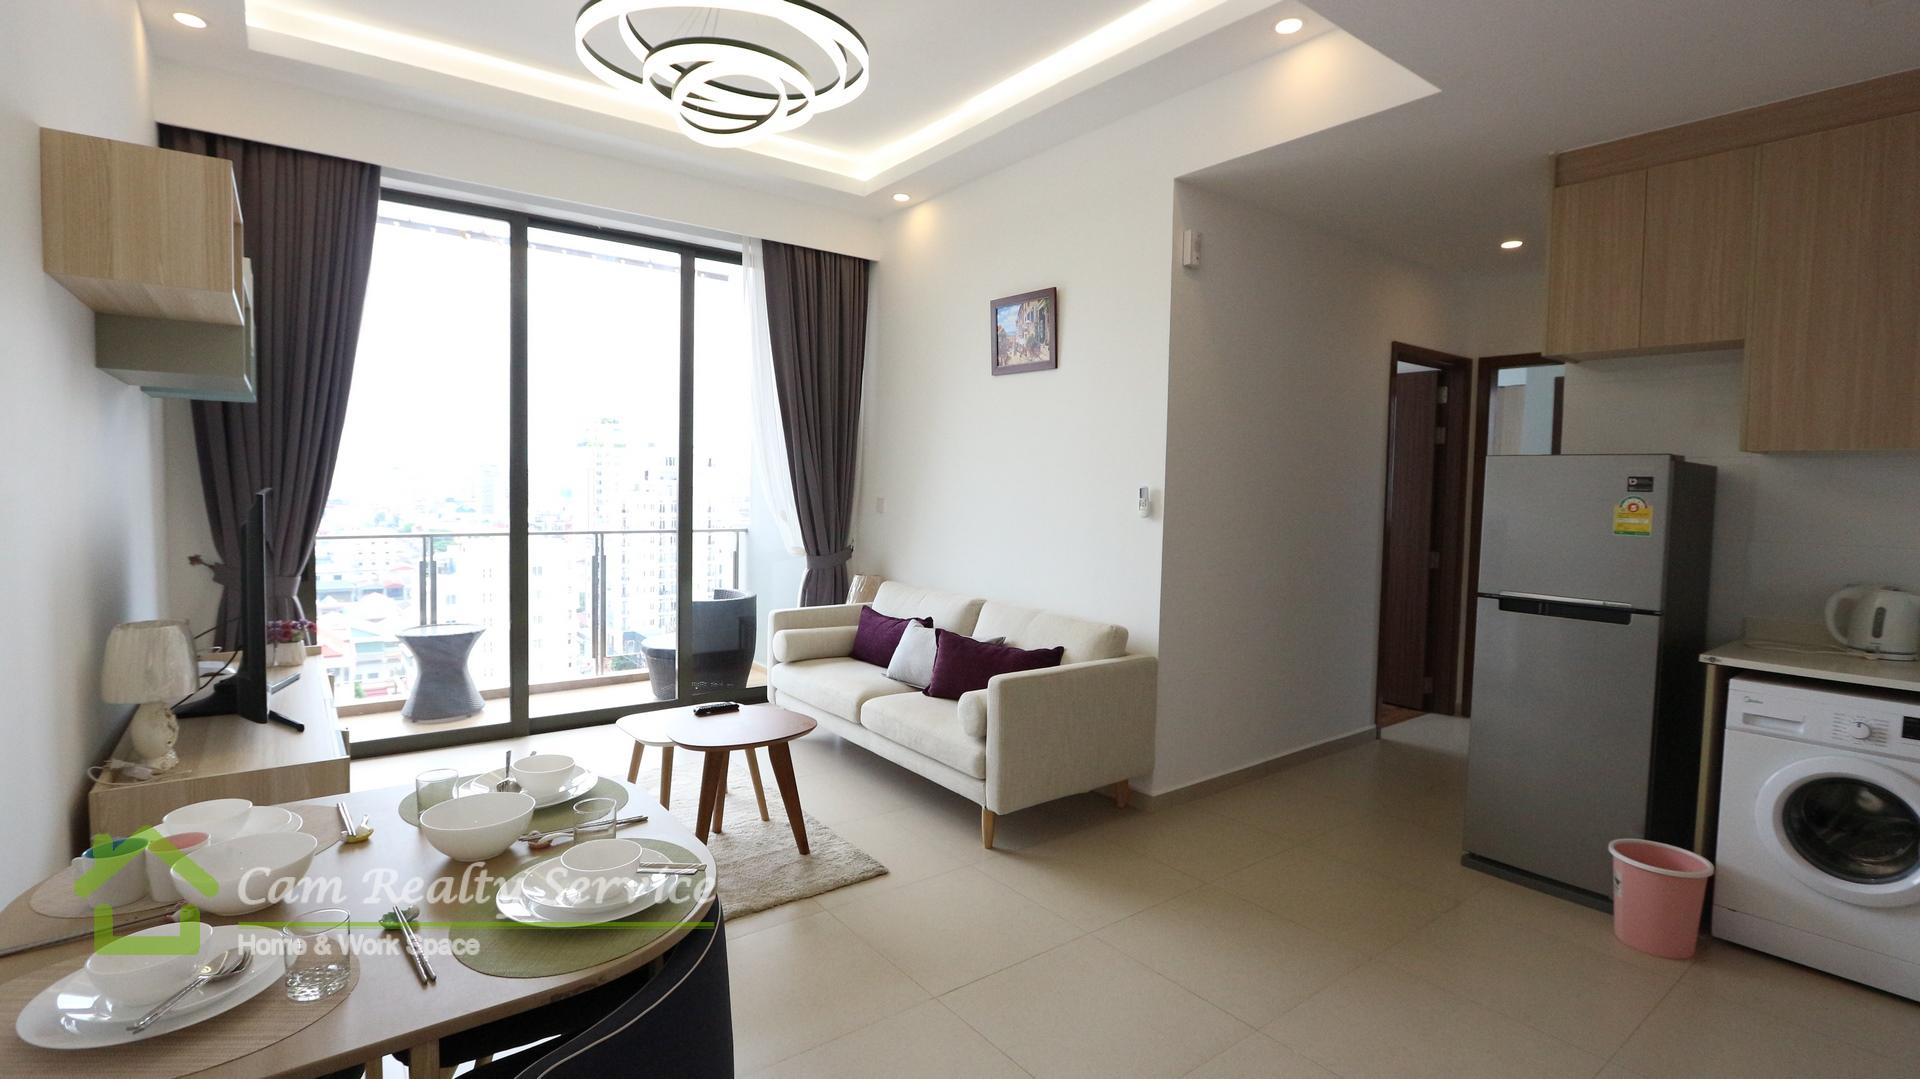 BKK3 area(Close to BKK1)  Western style fully furnished 2 bedrooms serviced apartment for rent  950$/month up  Pool & gym